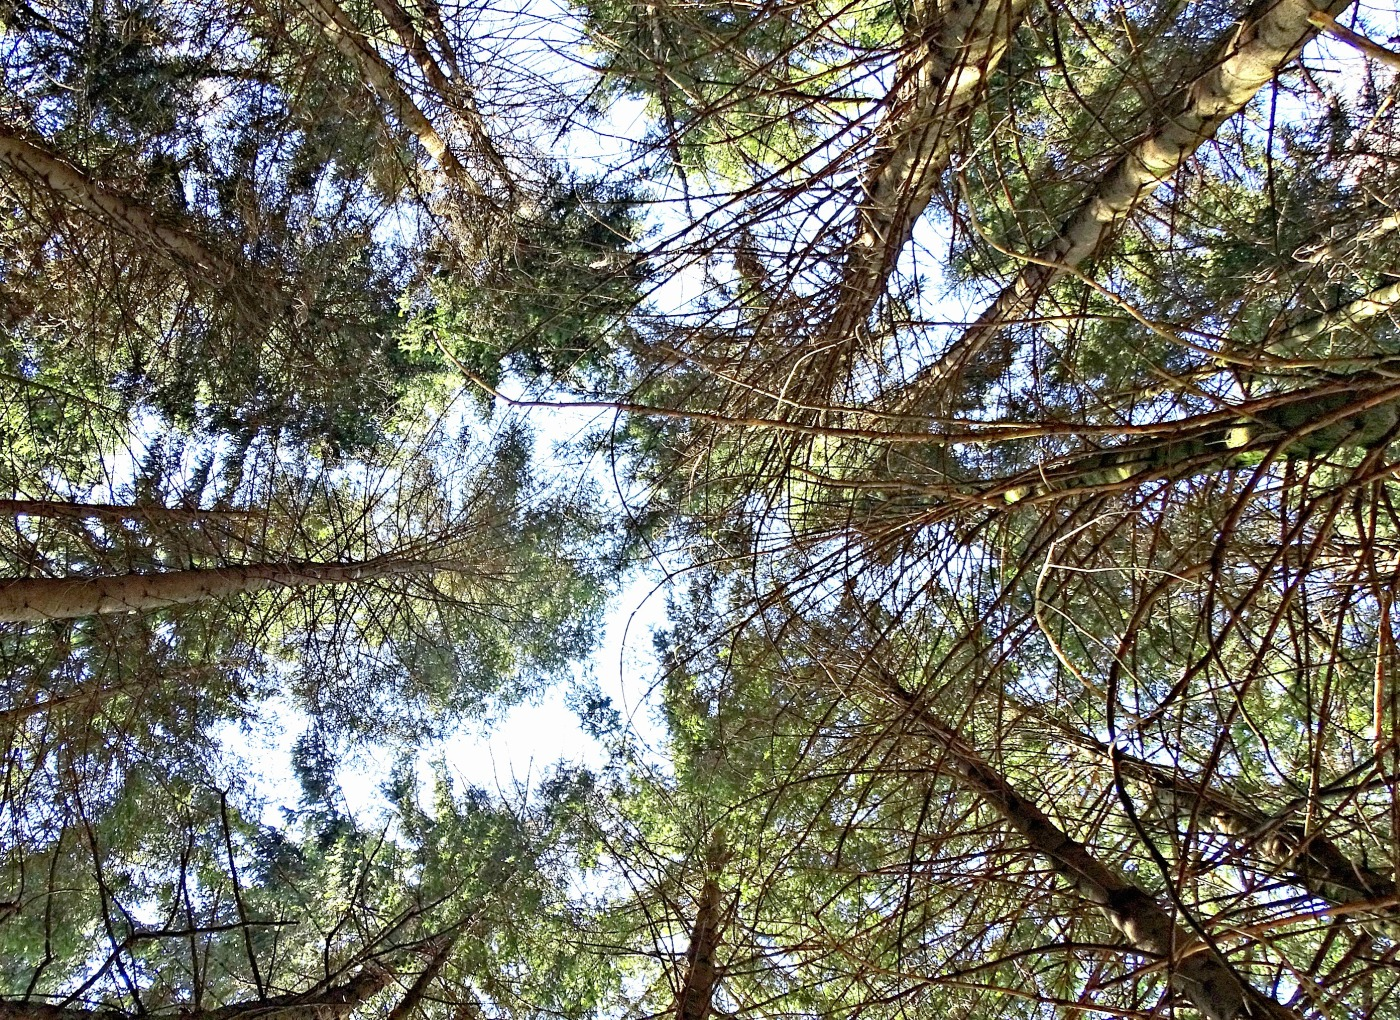 Treetop view - The truth about difficulties of living abroad & how to cope